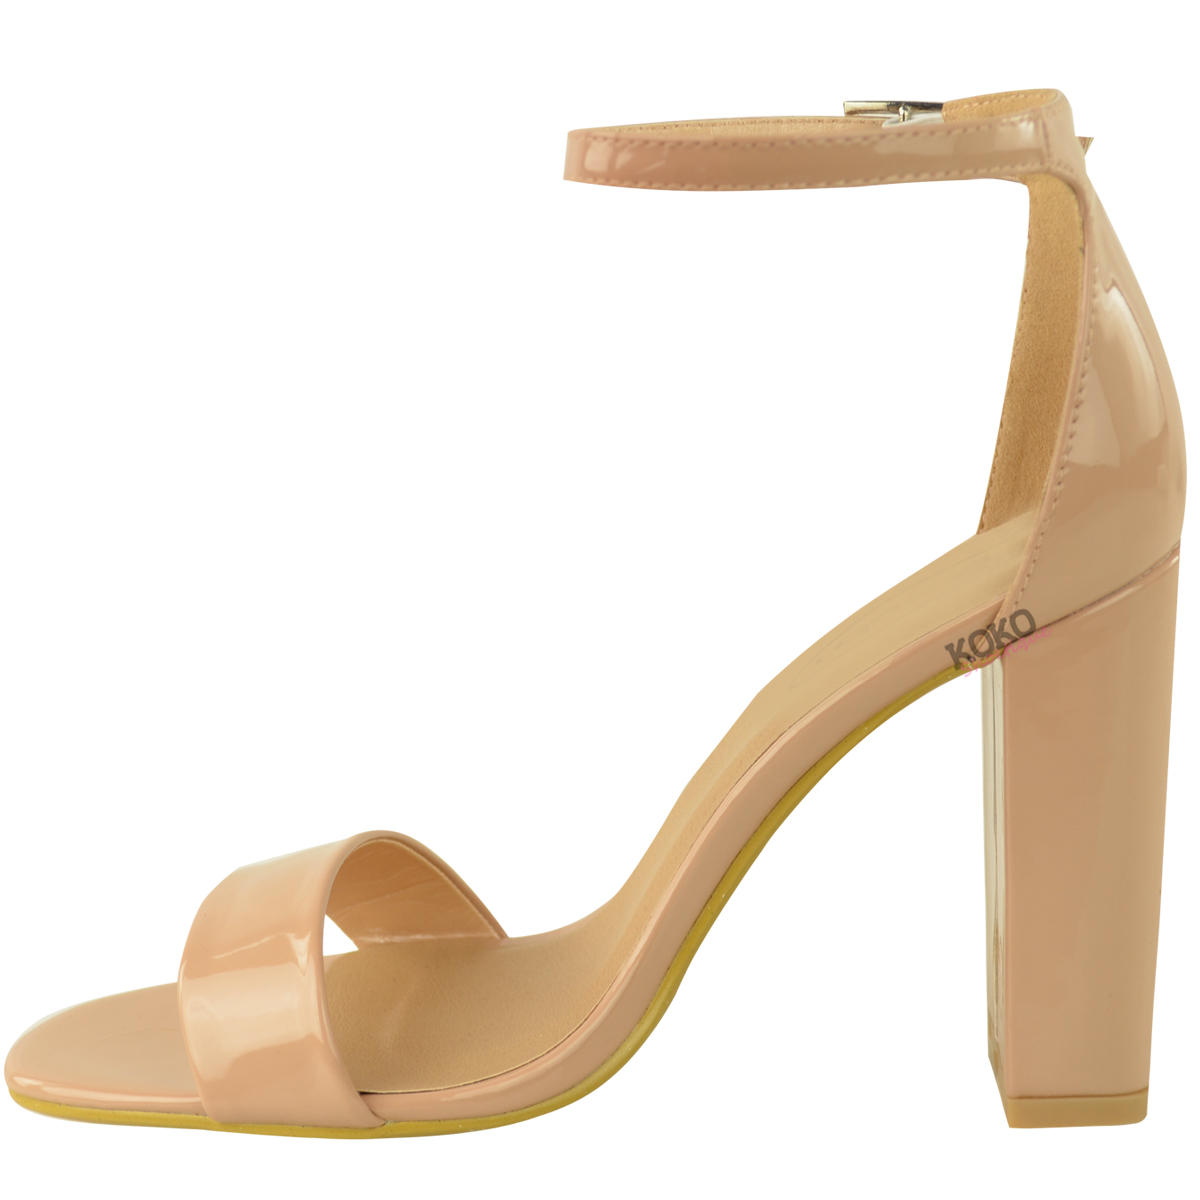 Womens-Ladies-Block-High-Heels-Ankle-Strap-Sexy-Open-Toe-Sandals-Shoes-Size-New miniatuur 50